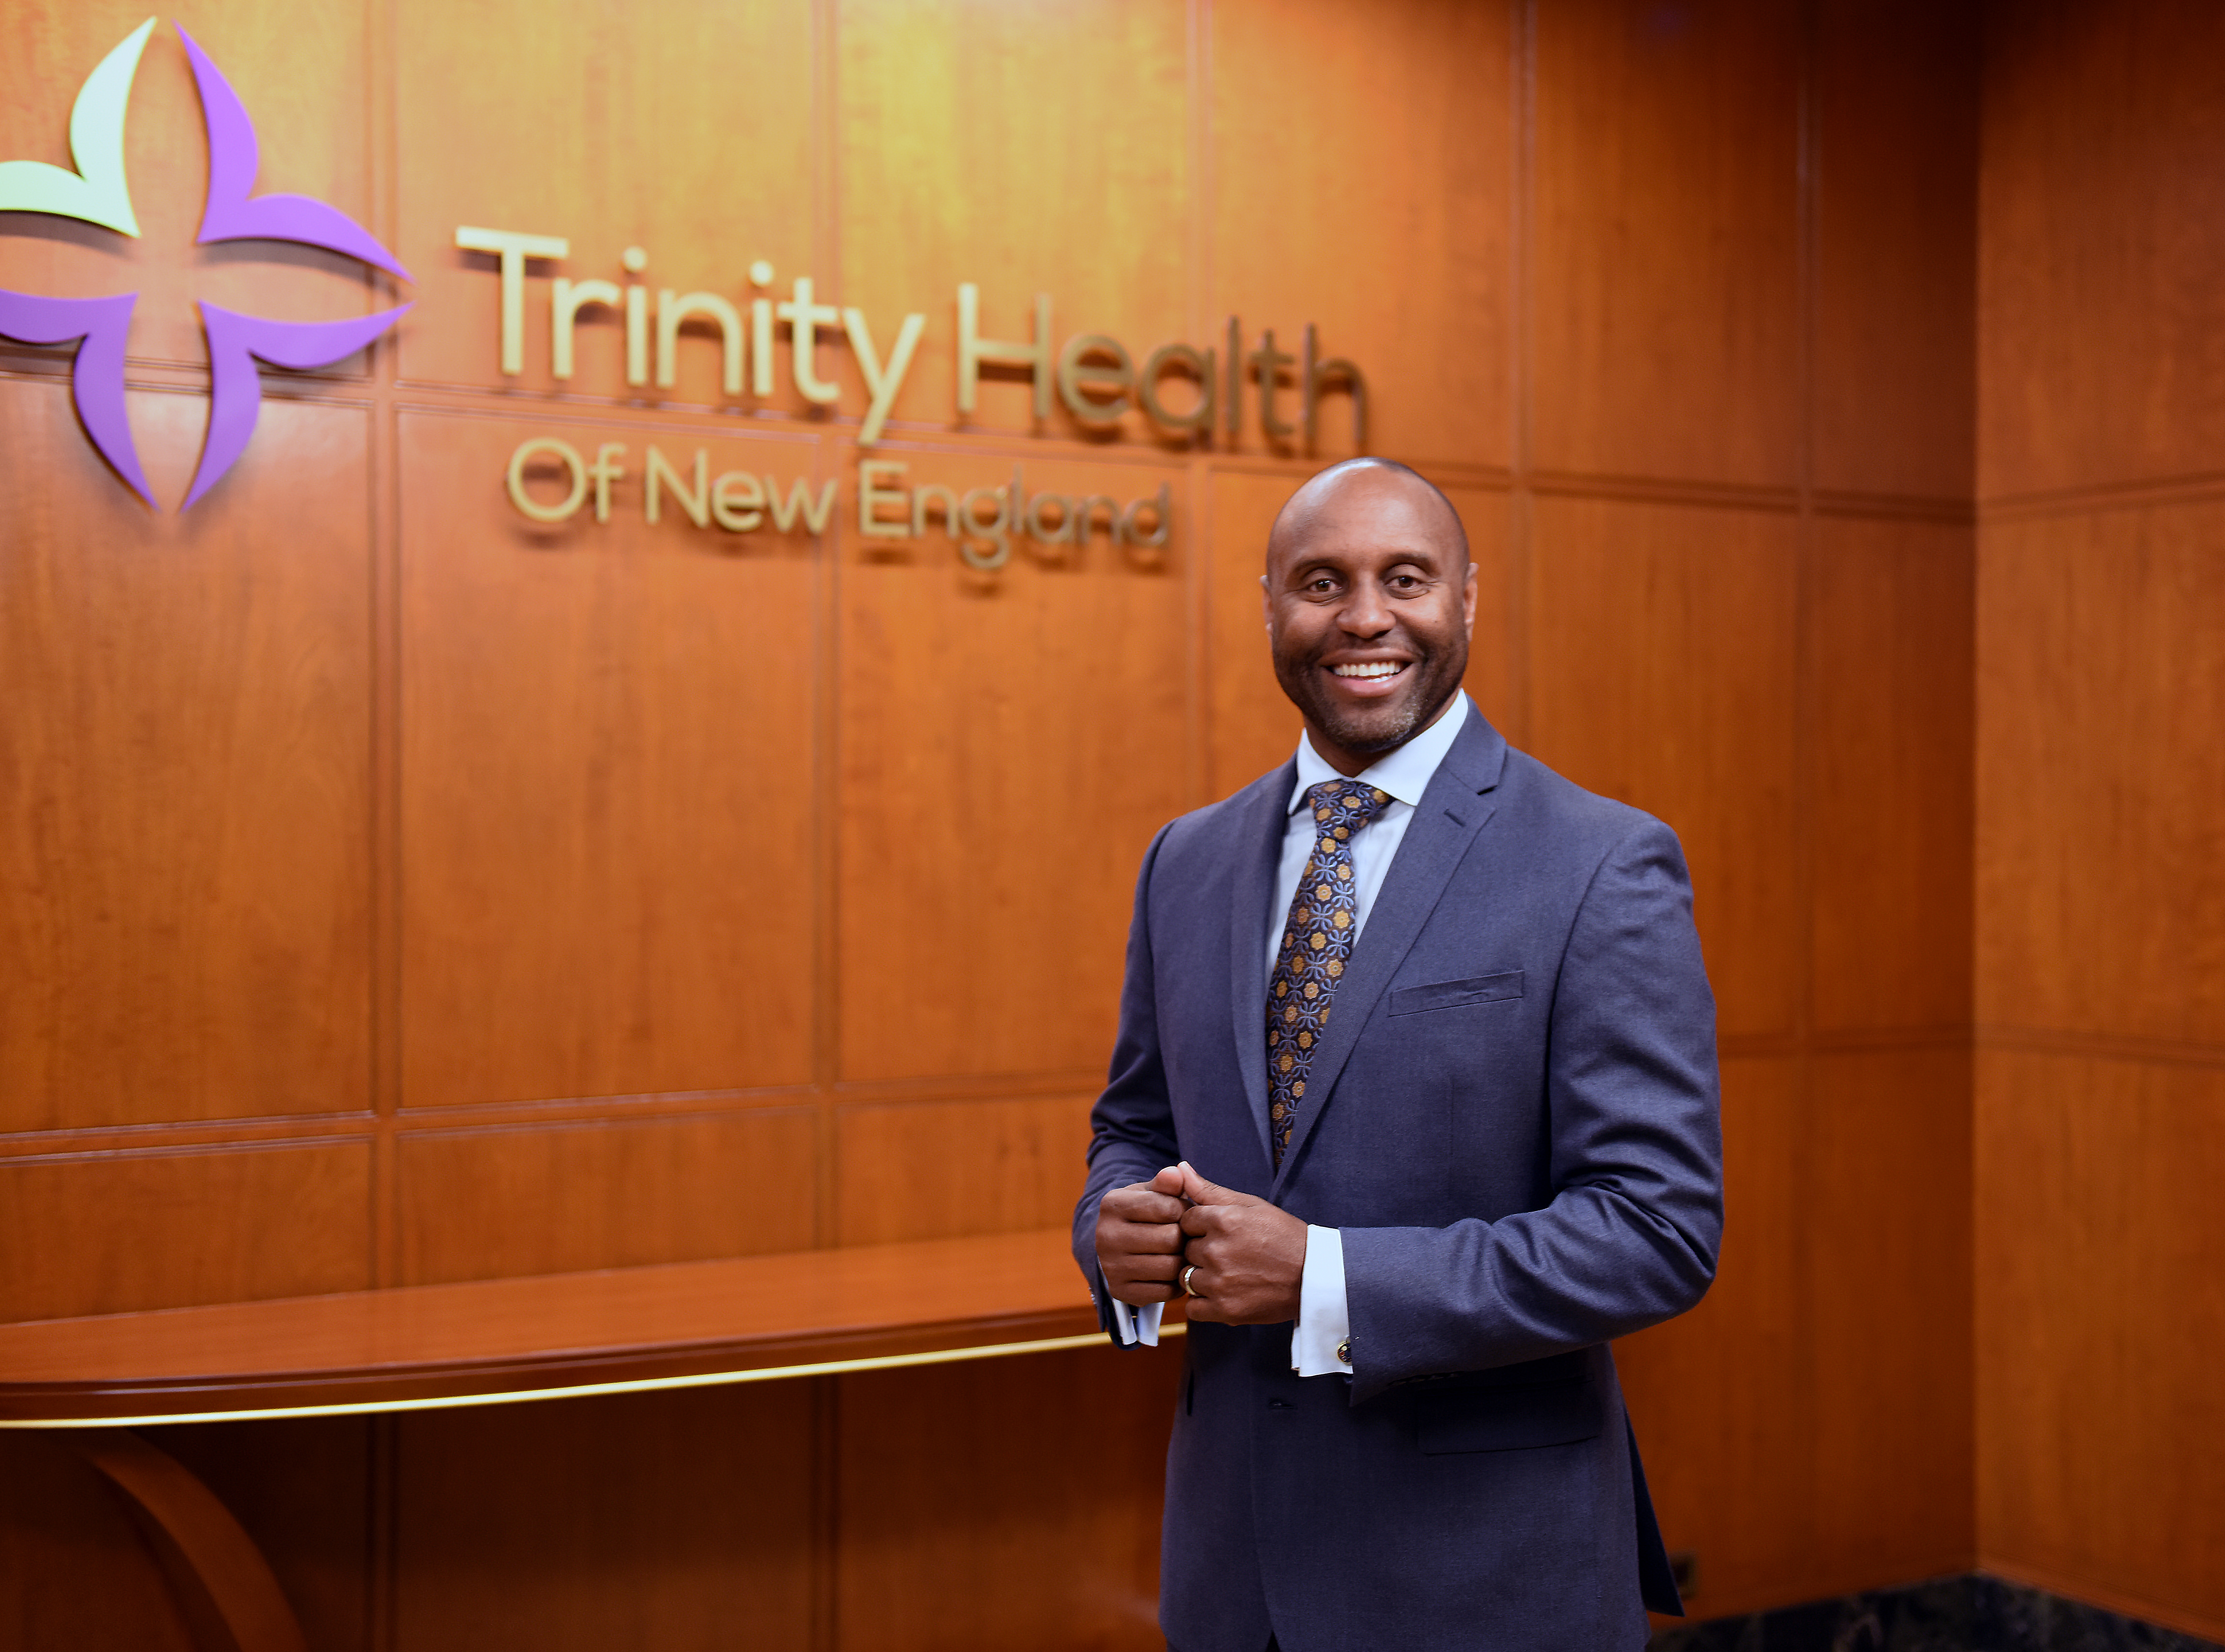 Dr. Reginald Eadie, president and CEO of Trinity Health of New England, who has been working to build trust in the new coronavirus vaccines among members of Black American communities.